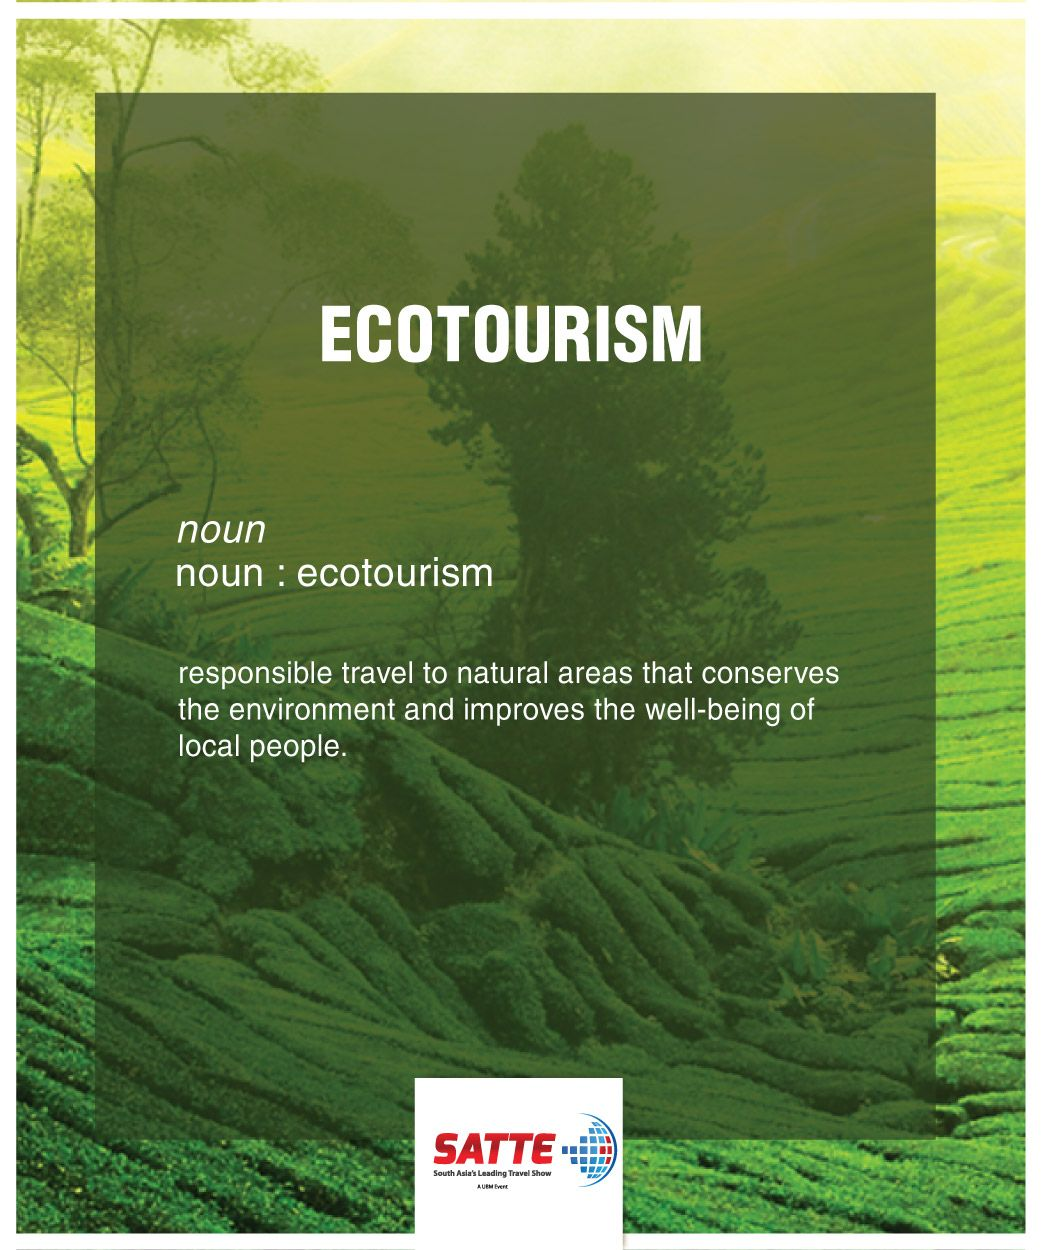 Didyouknow There Is Something Called As The Ecotourism Source